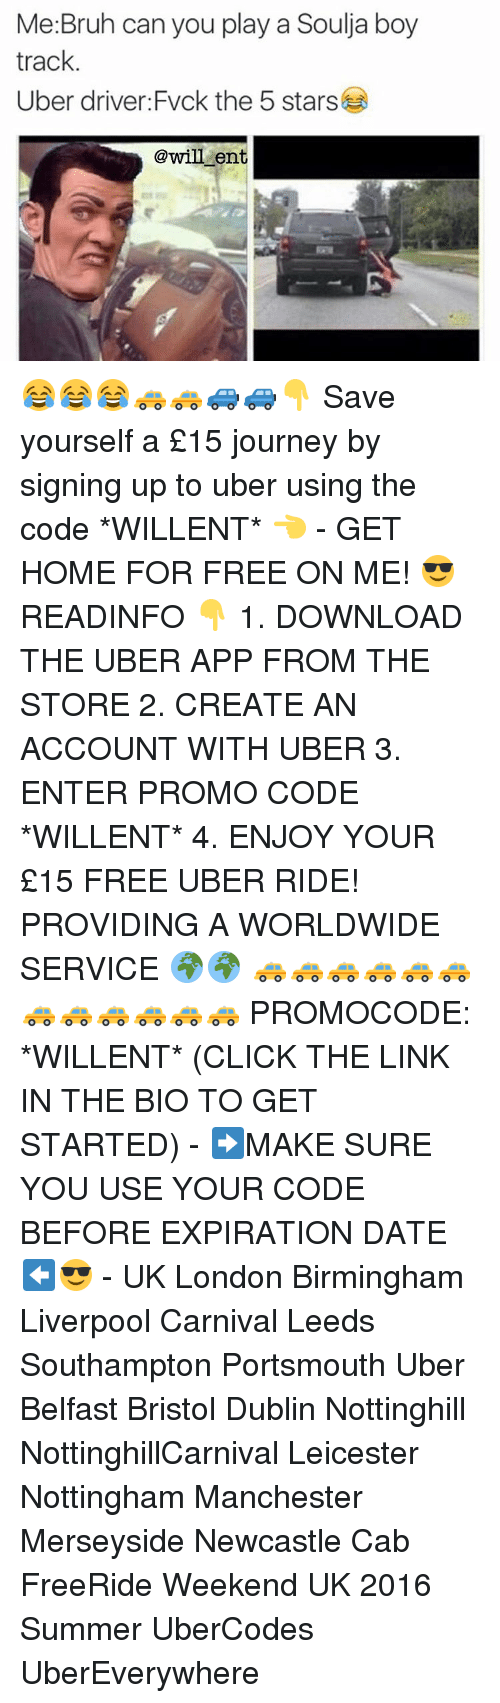 Journey, Memes, and Soulja Boy: Me:Bruh can you play a Soulja boy  track  Uber driver Fvck the 5 stars  @will ent 😂😂😂🚕🚕🚙🚙👇 Save yourself a £15 journey by signing up to uber using the code *WILLENT* 👈 - GET HOME FOR FREE ON ME! 😎 READINFO 👇 1. DOWNLOAD THE UBER APP FROM THE STORE 2. CREATE AN ACCOUNT WITH UBER 3. ENTER PROMO CODE *WILLENT* 4. ENJOY YOUR £15 FREE UBER RIDE! PROVIDING A WORLDWIDE SERVICE 🌍🌍 🚕🚕🚕🚕🚕🚕🚕🚕🚕🚕🚕🚕 PROMOCODE: *WILLENT* (CLICK THE LINK IN THE BIO TO GET STARTED) - ➡️MAKE SURE YOU USE YOUR CODE BEFORE EXPIRATION DATE ⬅️😎 - UK London Birmingham Liverpool Carnival Leeds Southampton Portsmouth Uber Belfast Bristol Dublin Nottinghill NottinghillCarnival Leicester Nottingham Manchester Merseyside Newcastle Cab FreeRide Weekend UK 2016 Summer UberCodes UberEverywhere